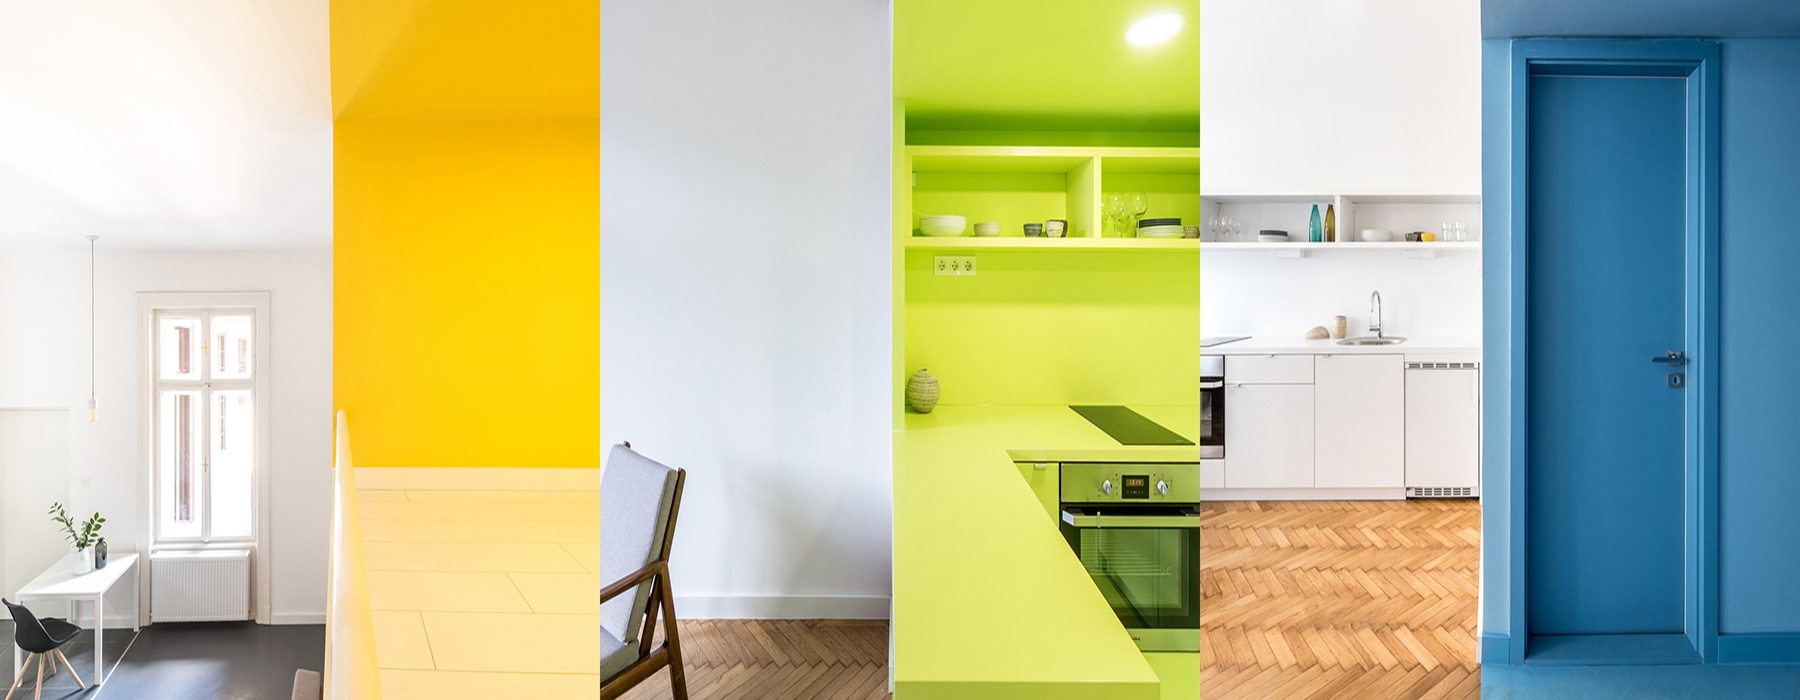 Composite image of six vertical panels showing a section of each of the three apartments and their color schemes.